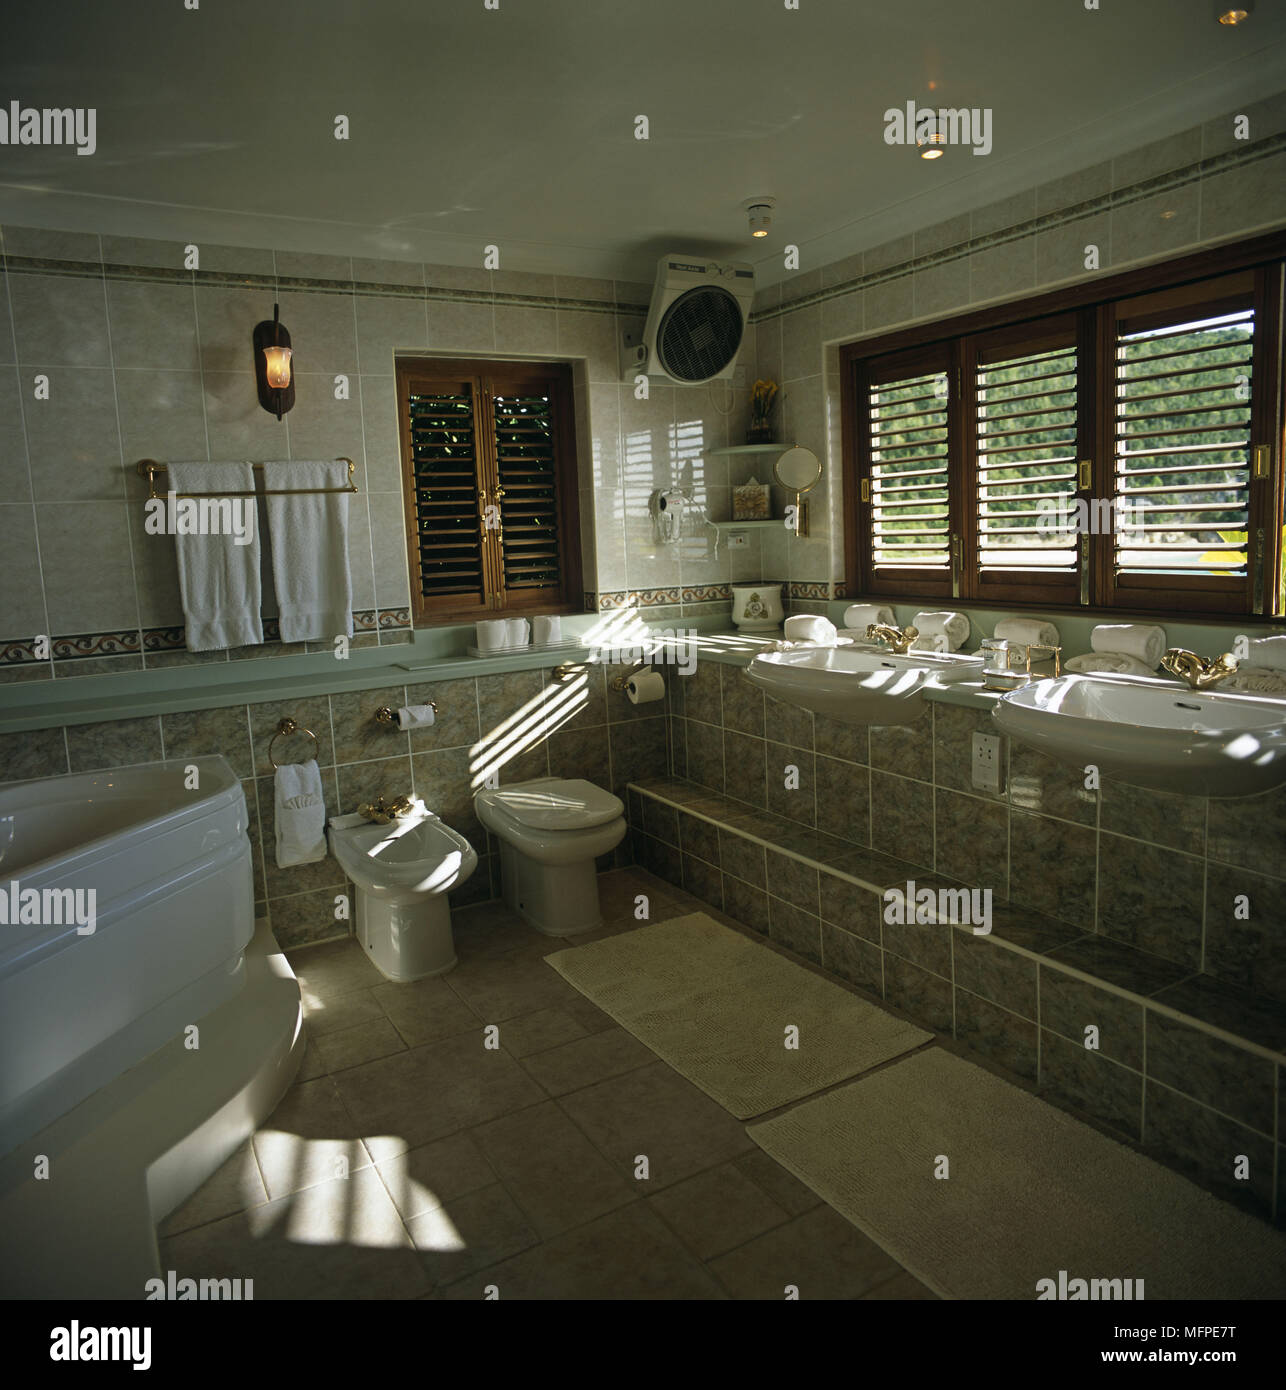 A modern tiled bathroom with a large jacuzzi bath next to a toilet ...